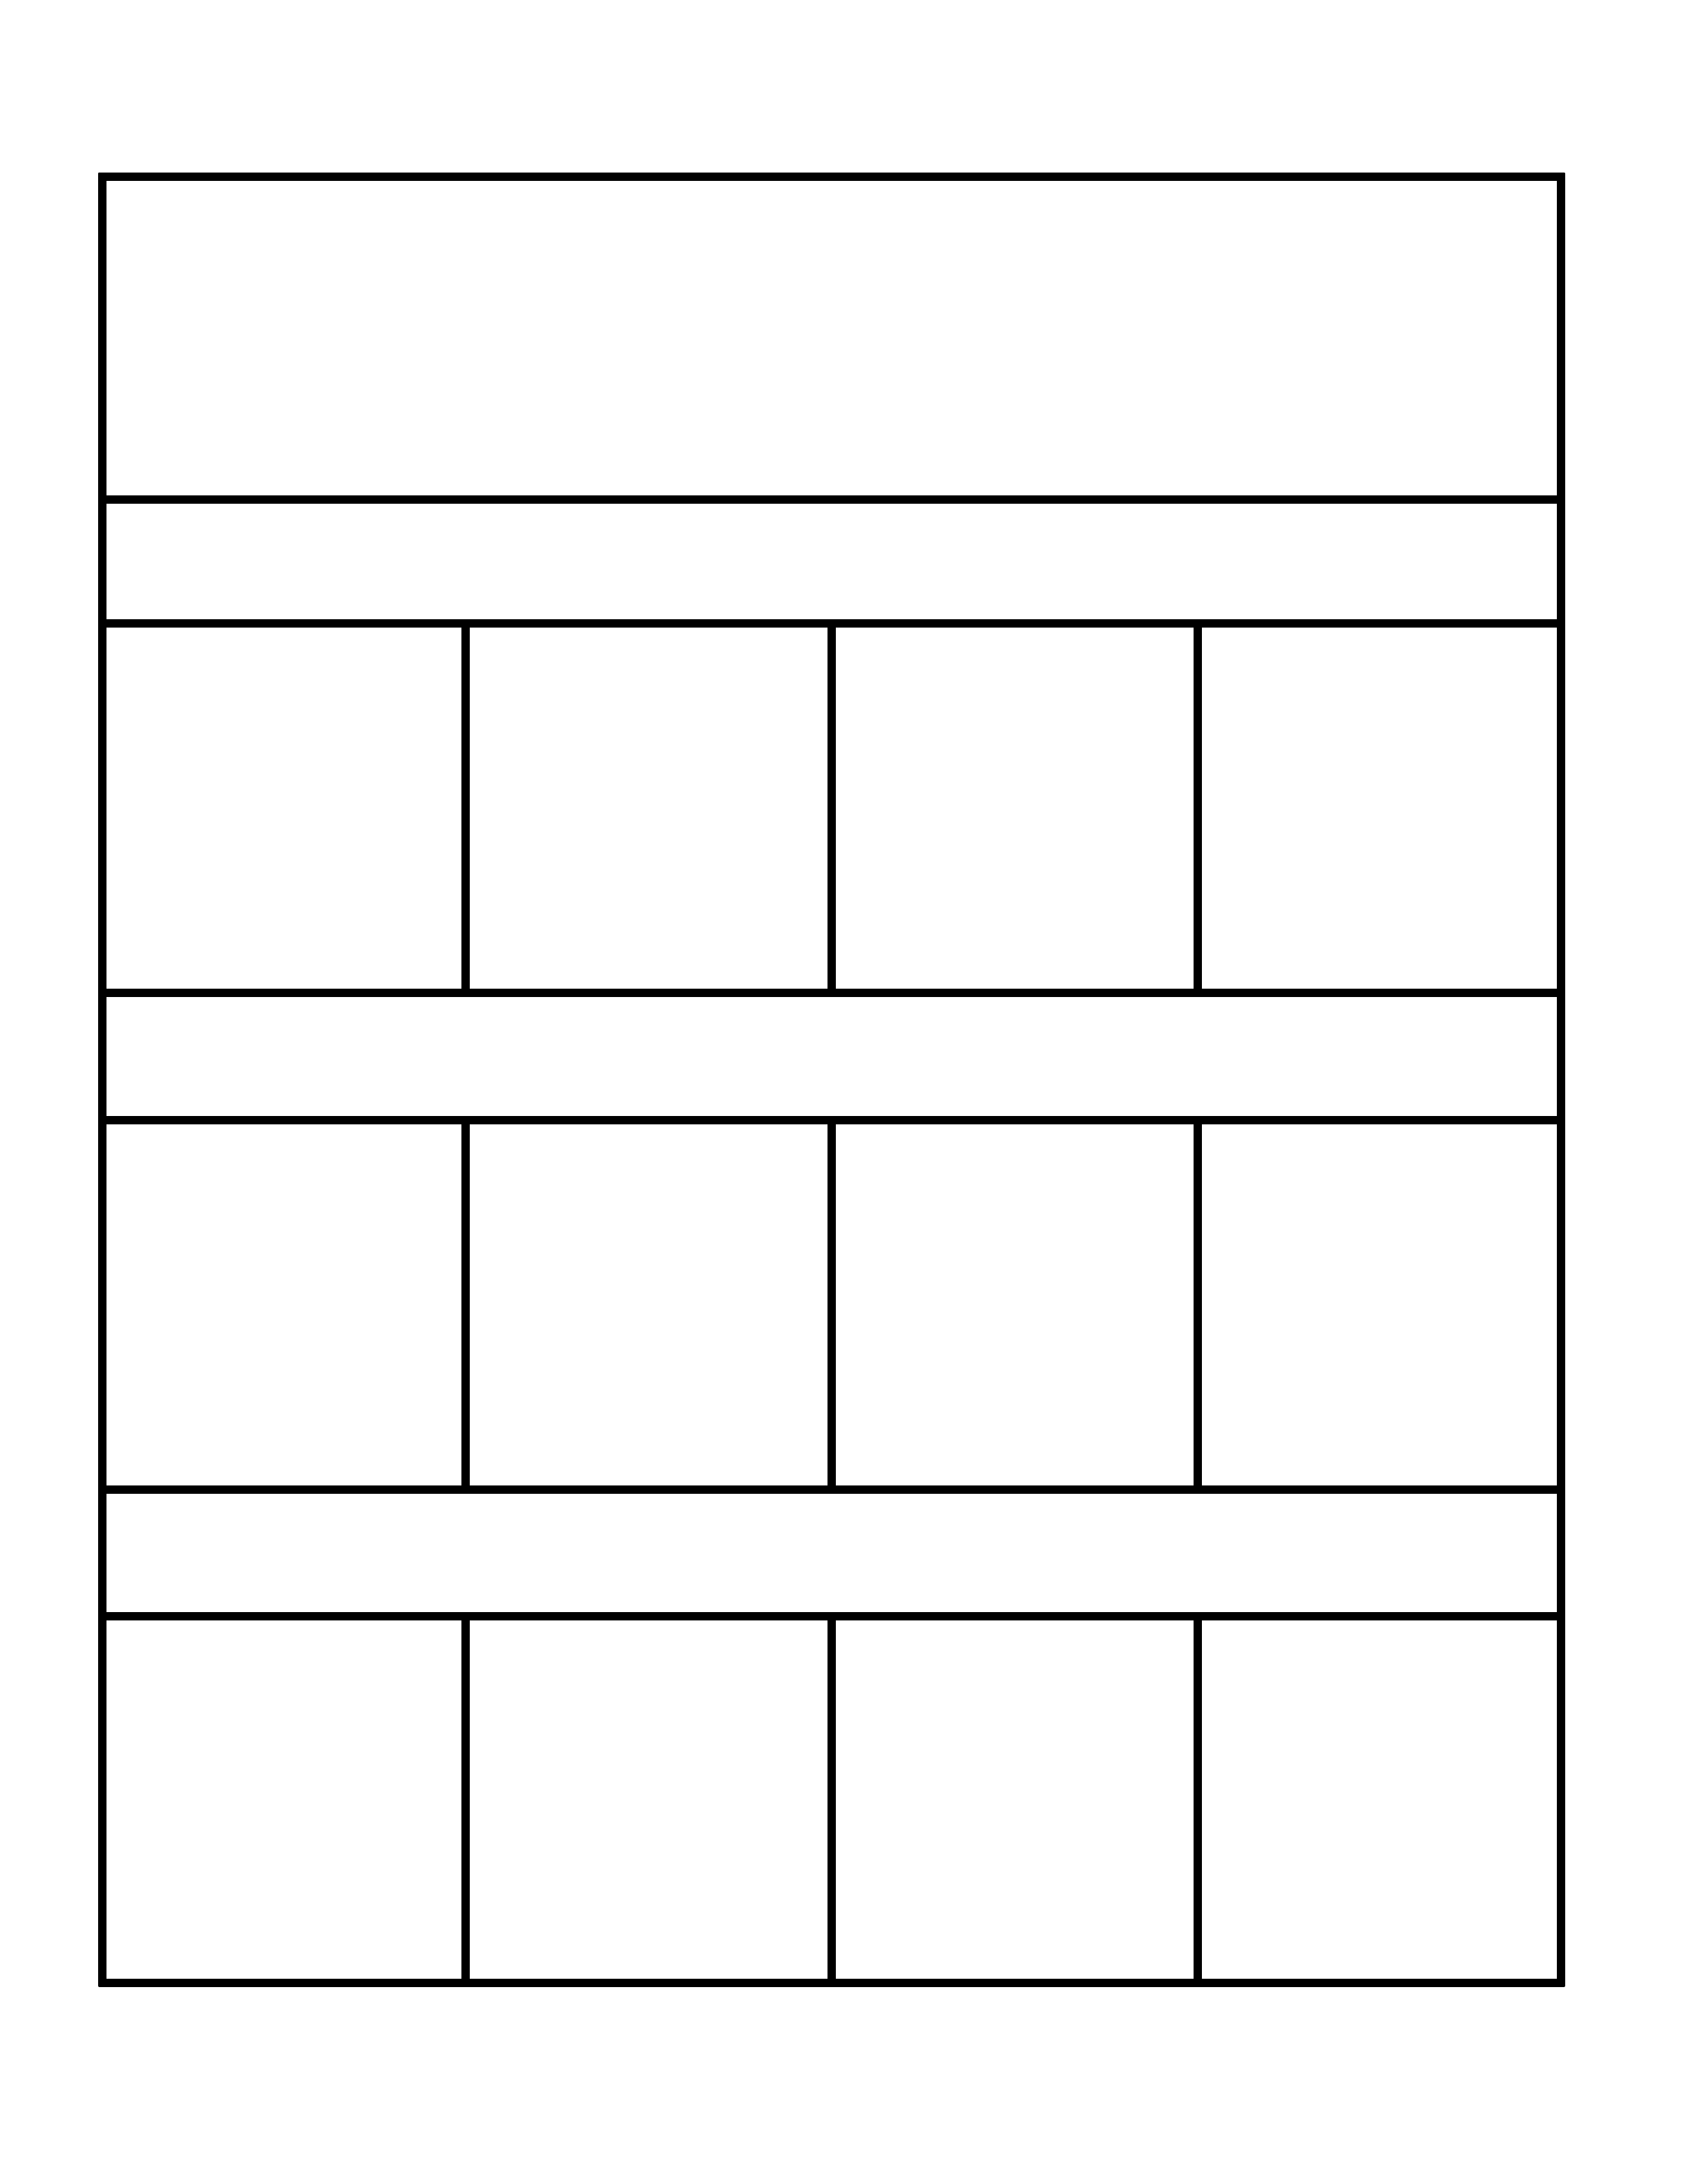 Preschool kids chore chart template free download for Graph template for kids